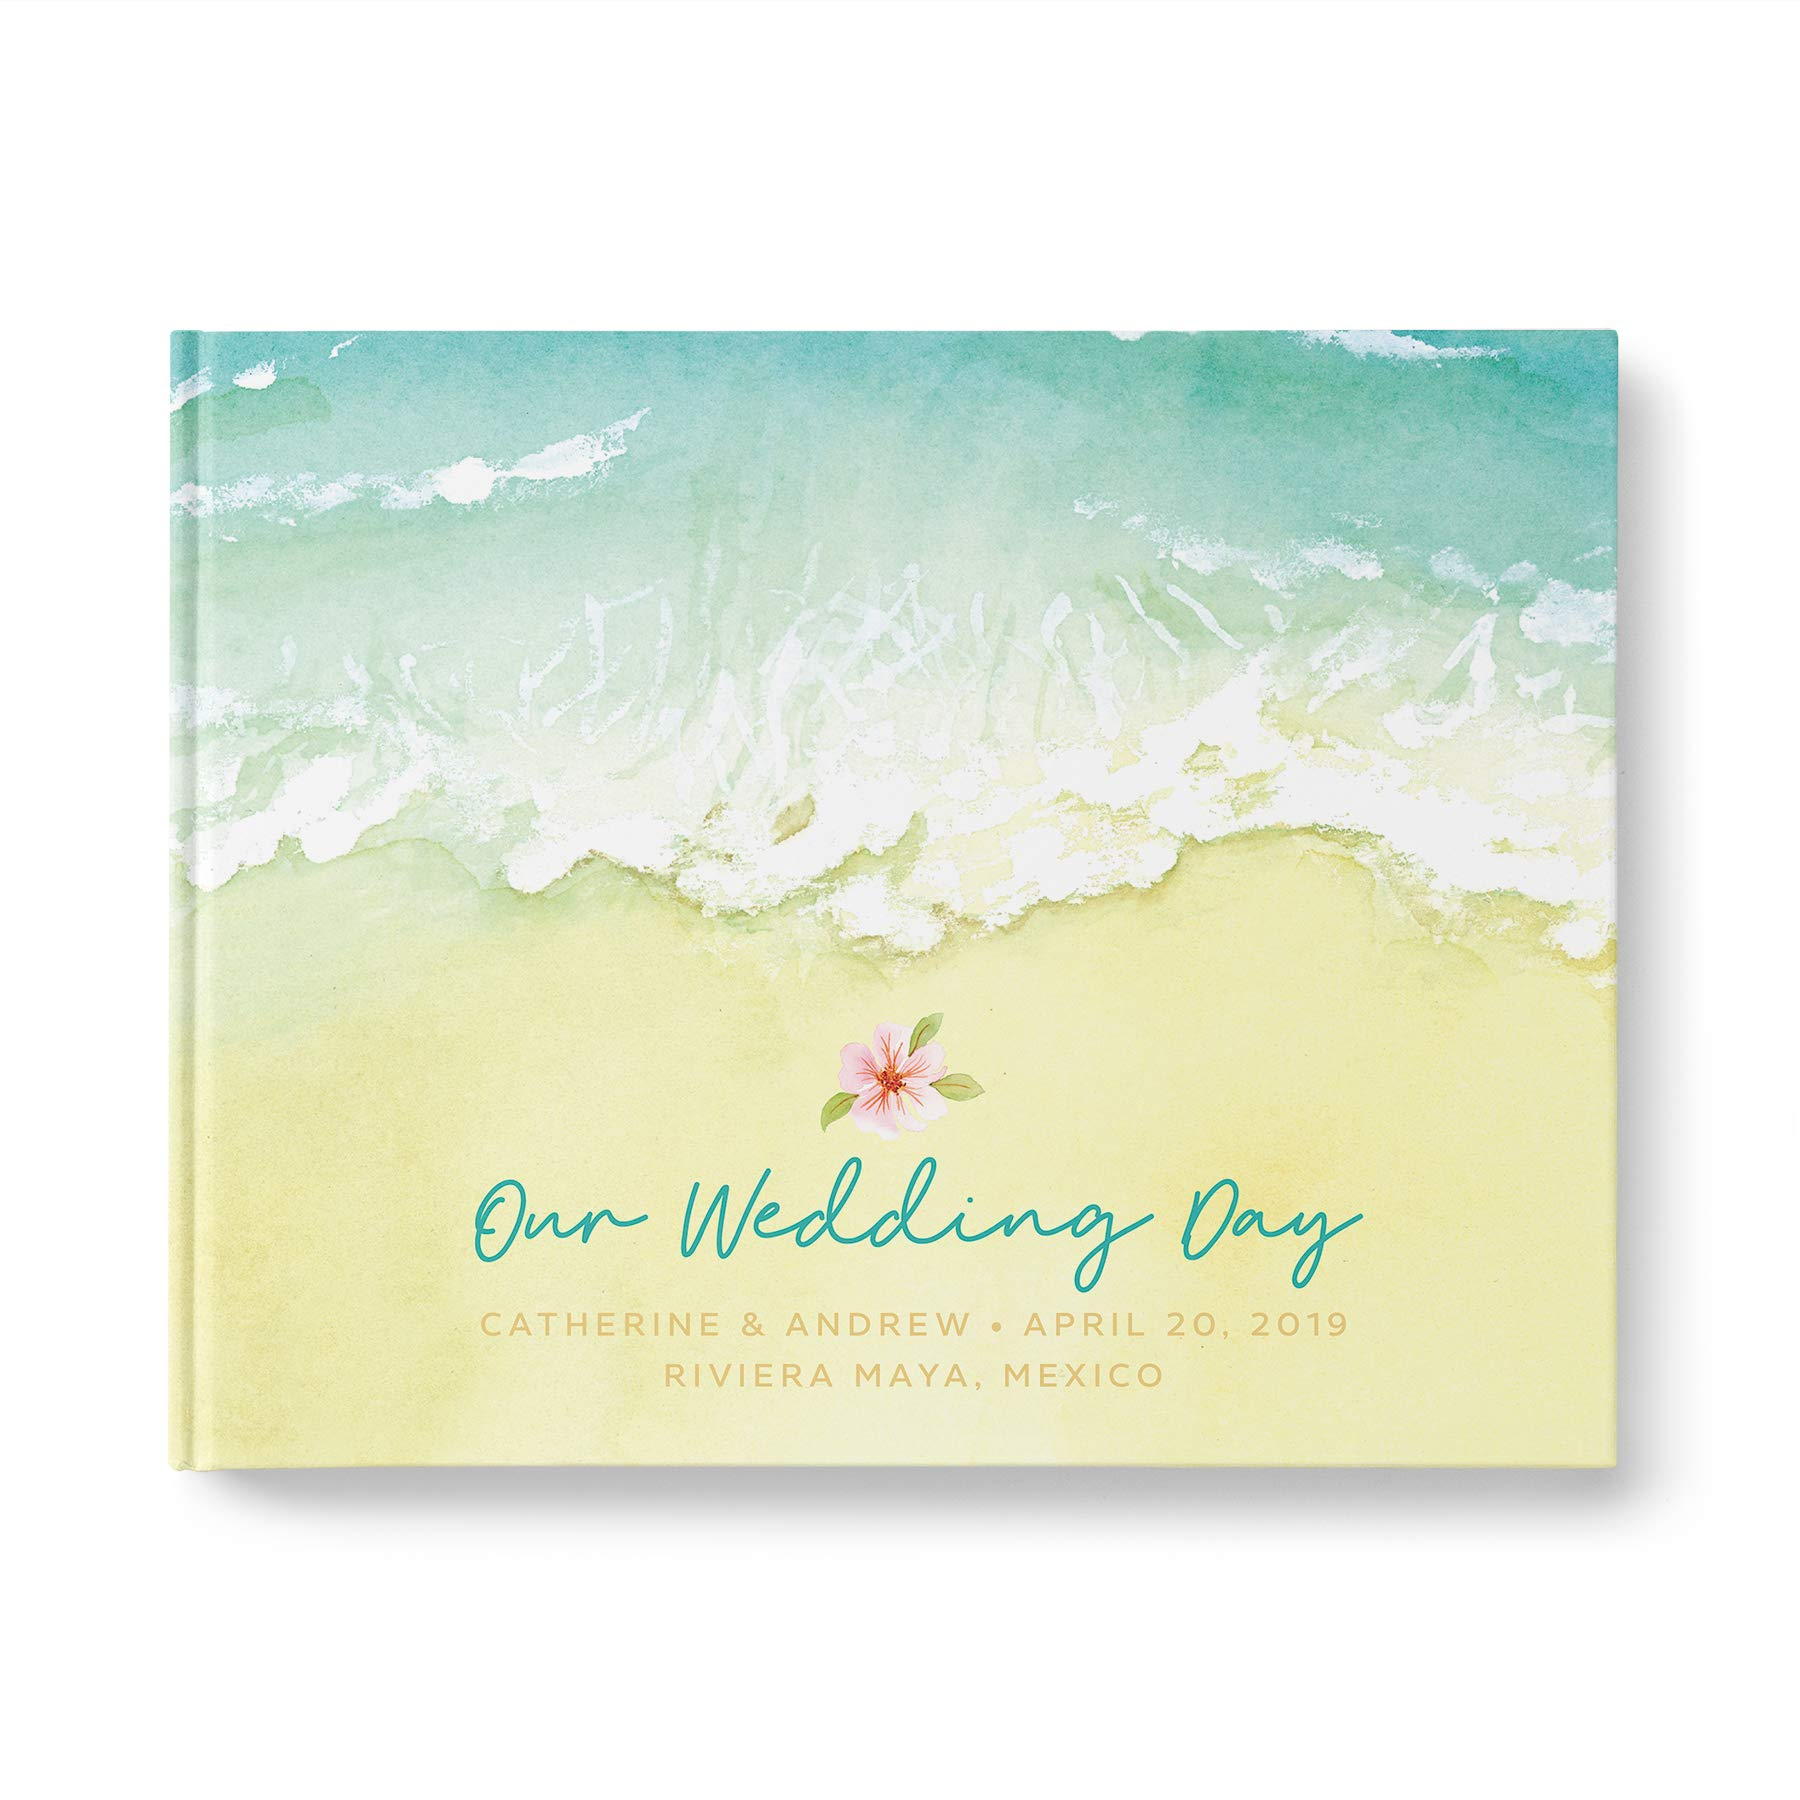 Beach Wedding Guest Book with Blank White Pages, Personalized Guestbook, Casebound Hardcover, Landscape 10.9 x 8.75 inch, 40 Acid-Free Sheets (80 Pages Total)